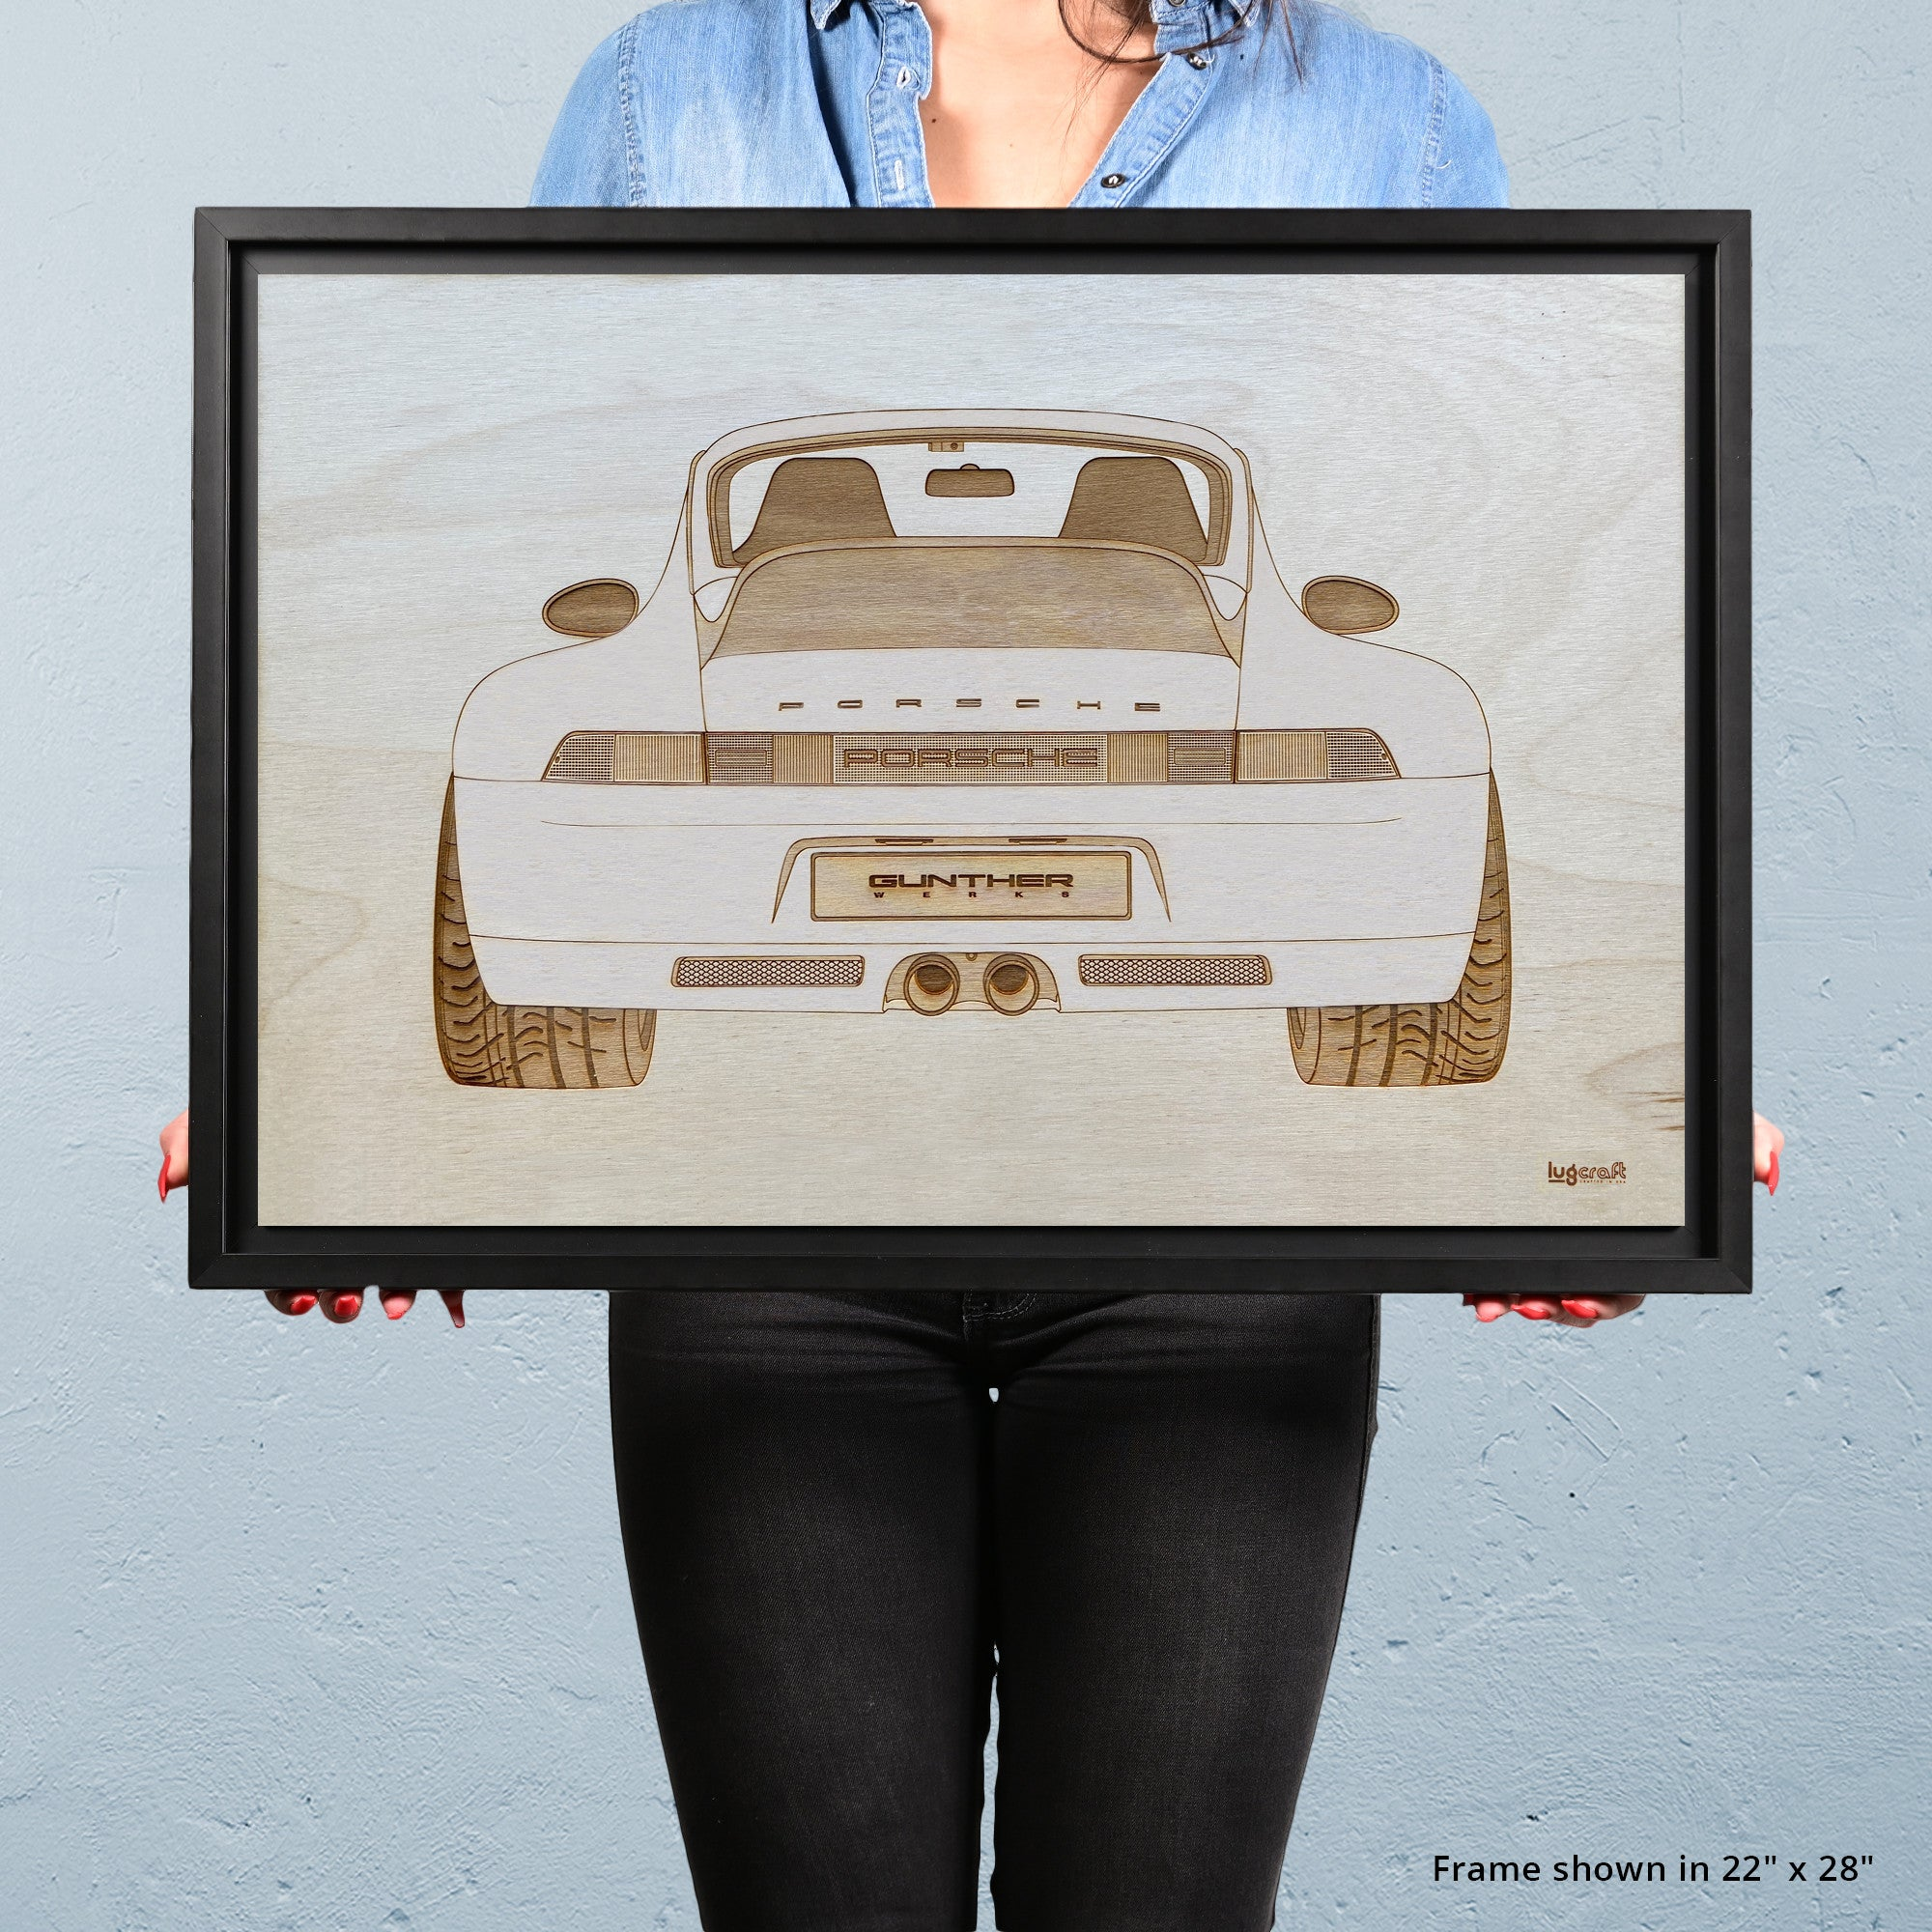 Gunther Werks 993 Framed Wood Engraved Artwork